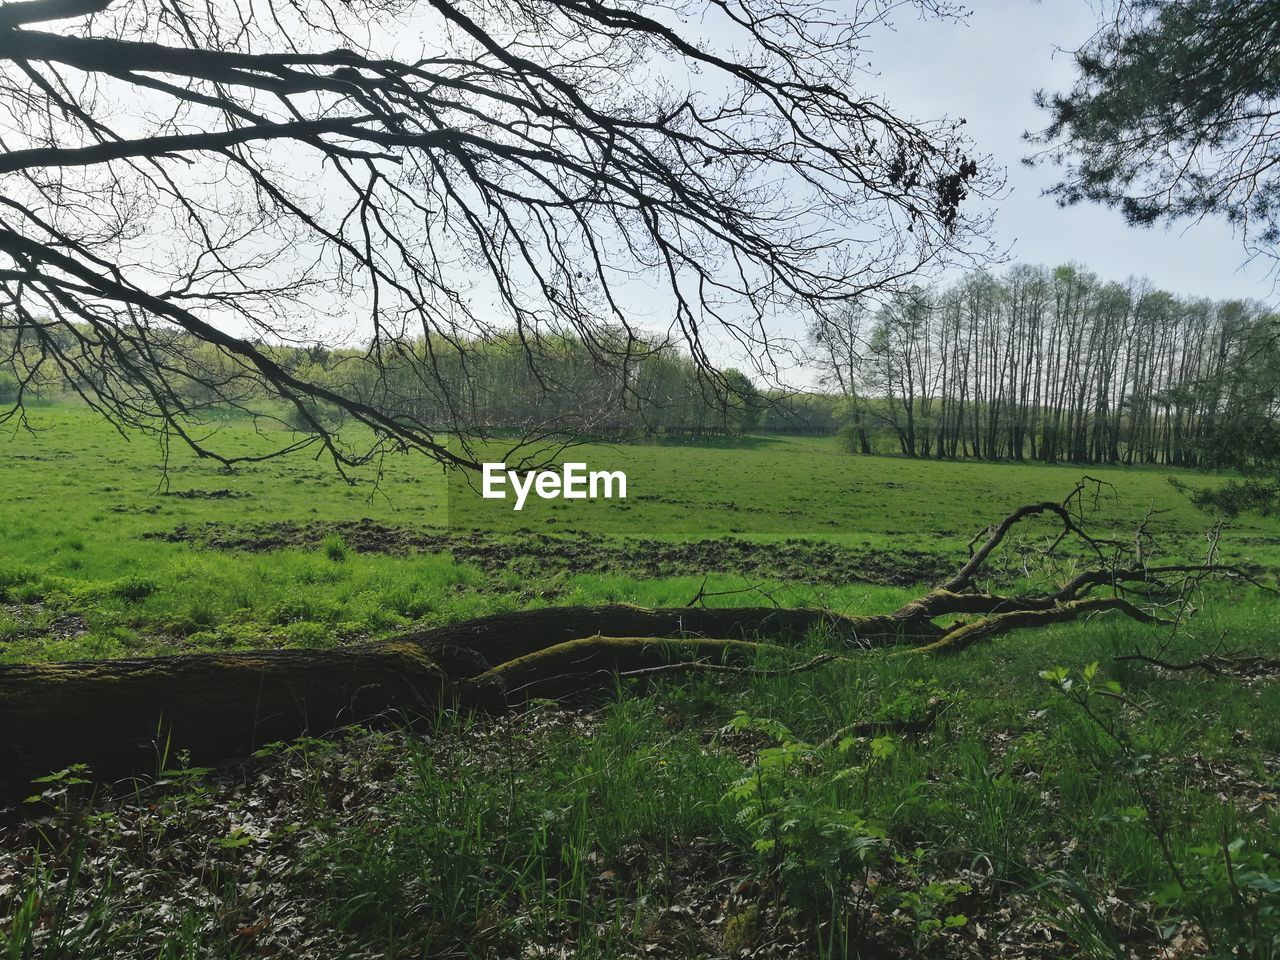 plant, tree, land, tranquility, tranquil scene, green color, grass, beauty in nature, field, nature, landscape, growth, no people, scenics - nature, environment, day, non-urban scene, sky, outdoors, forest